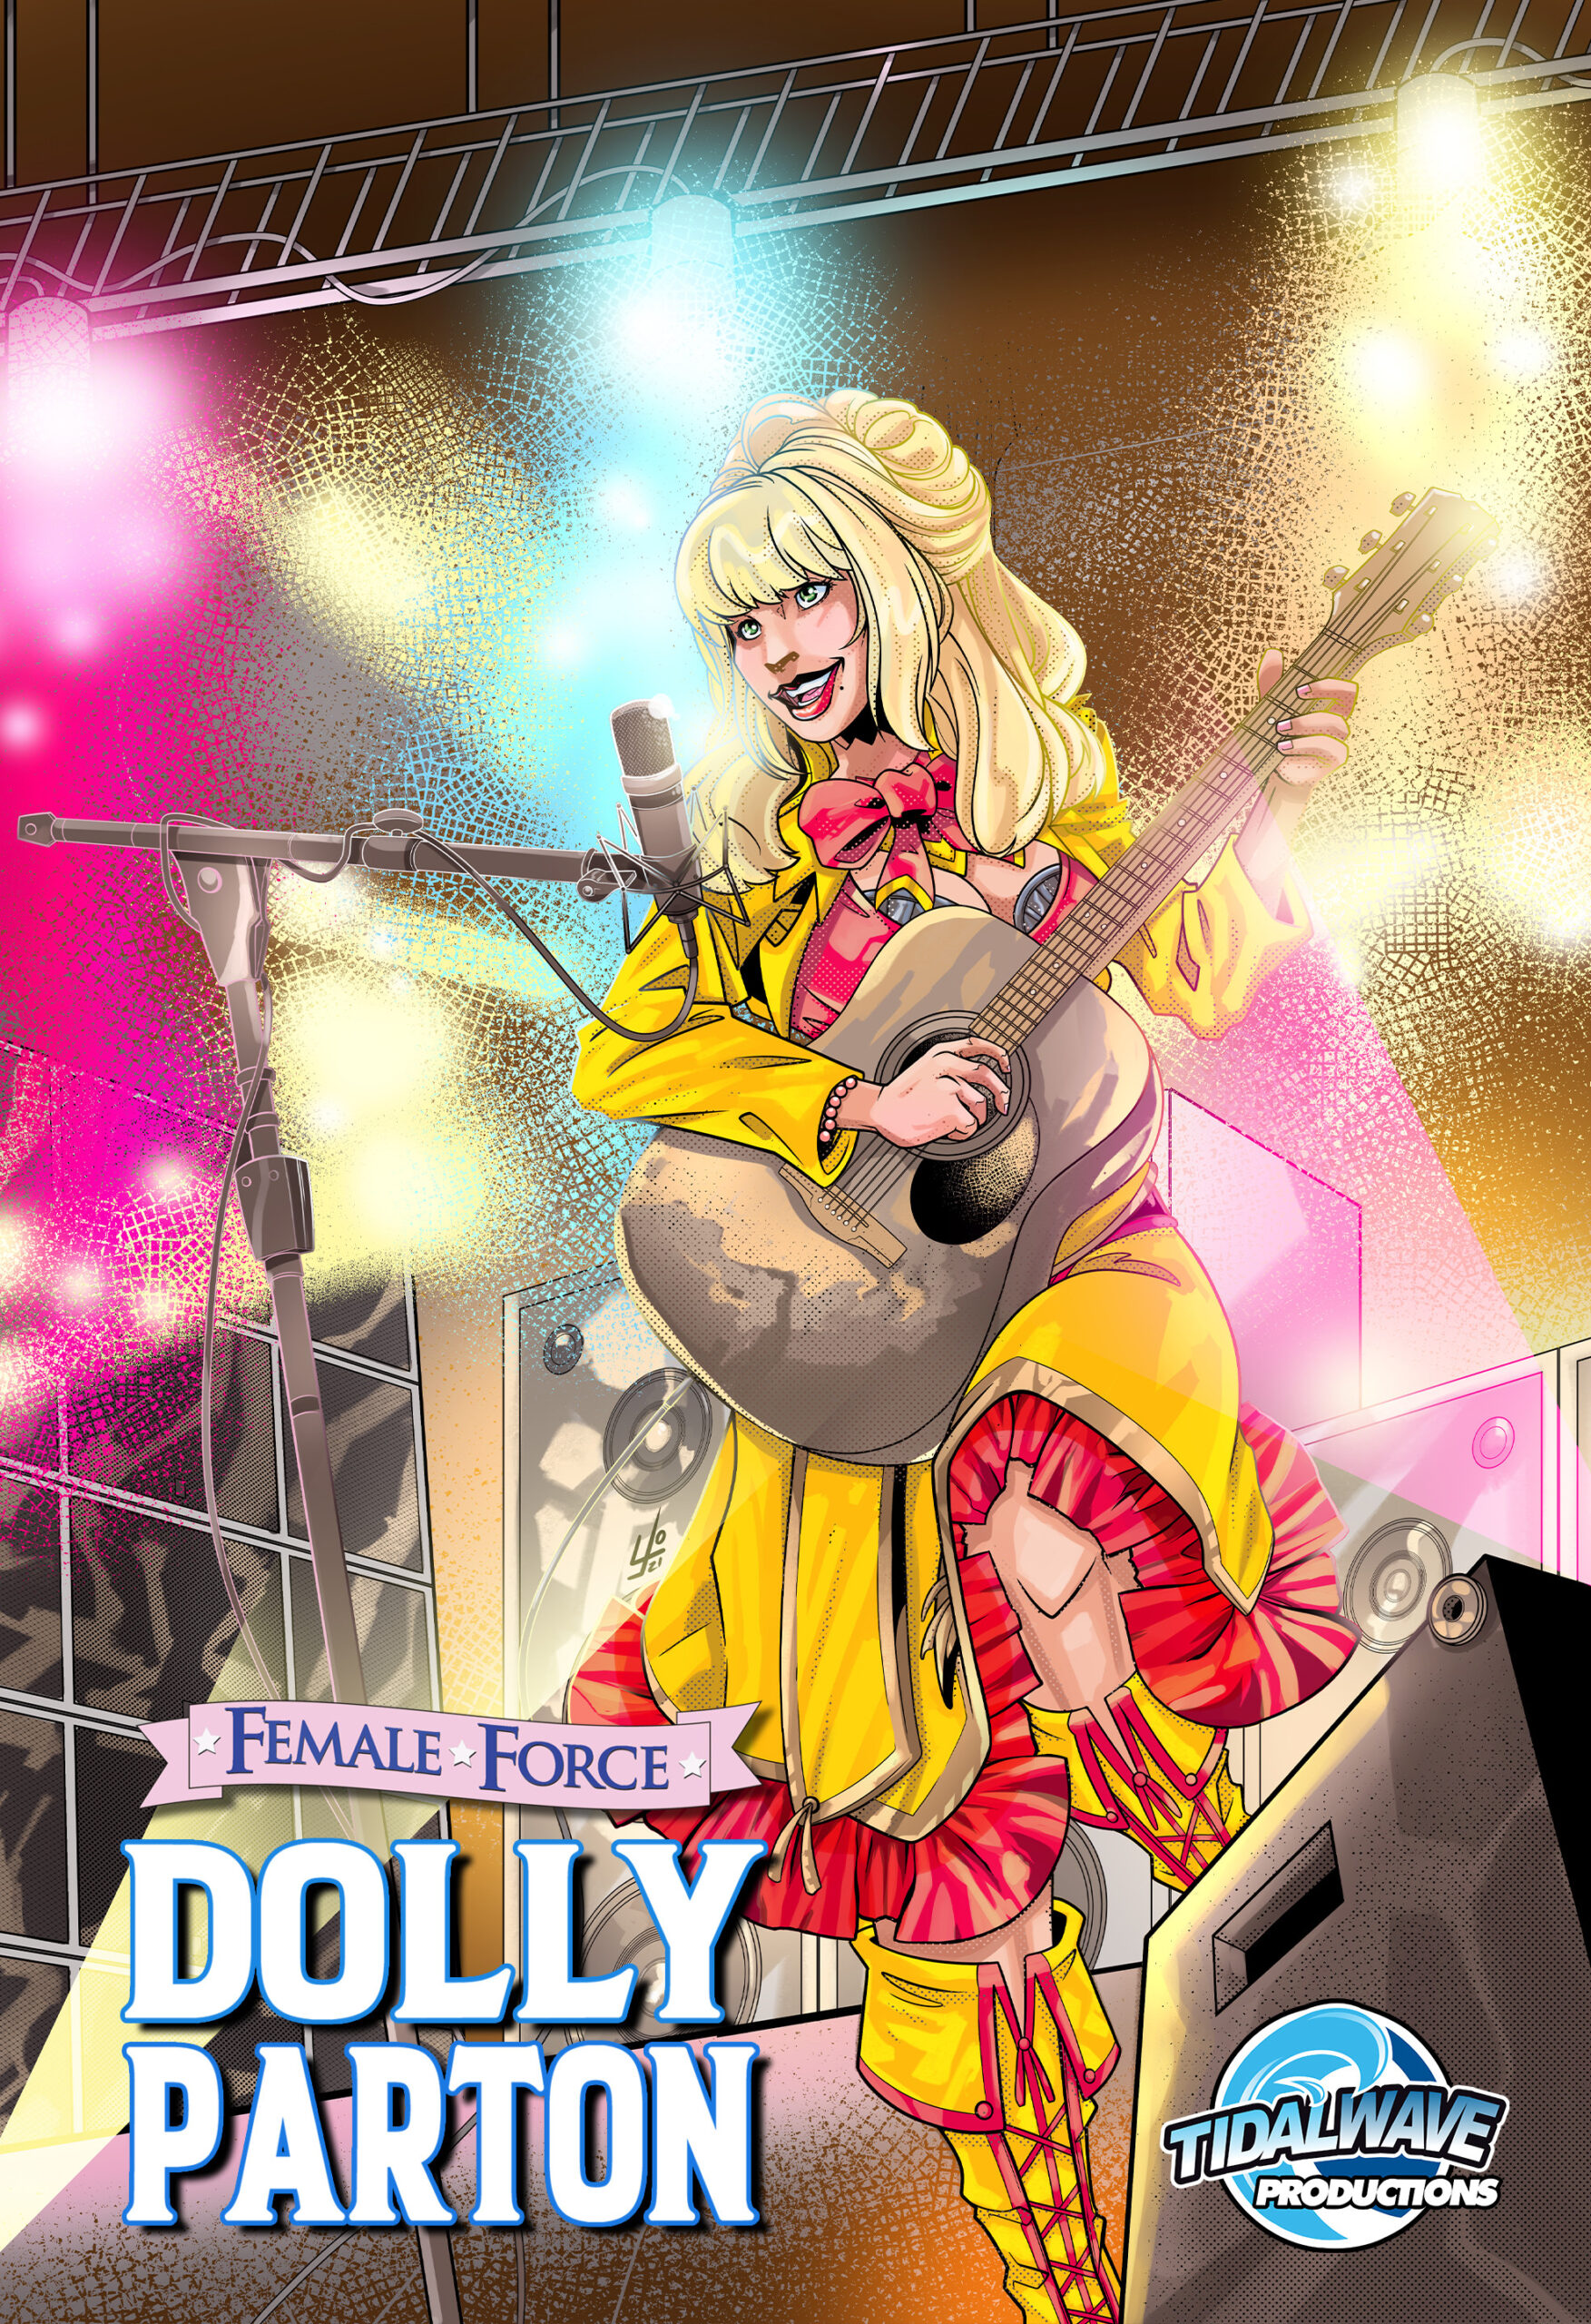 Read more about the article Dolly Parton gets the comic book treatment